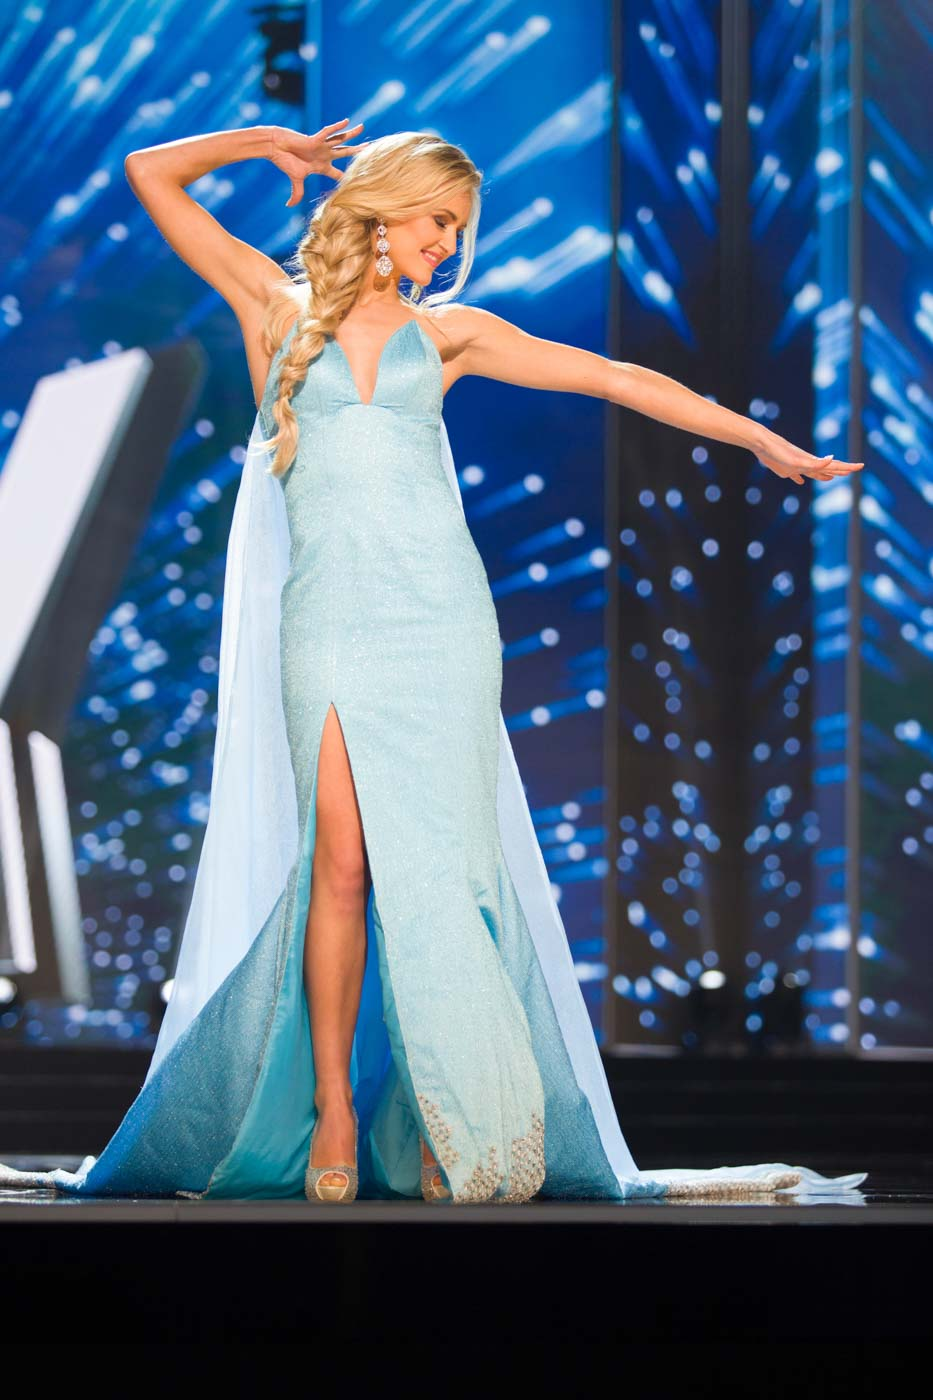 Christina Waage, Miss Norway 2016